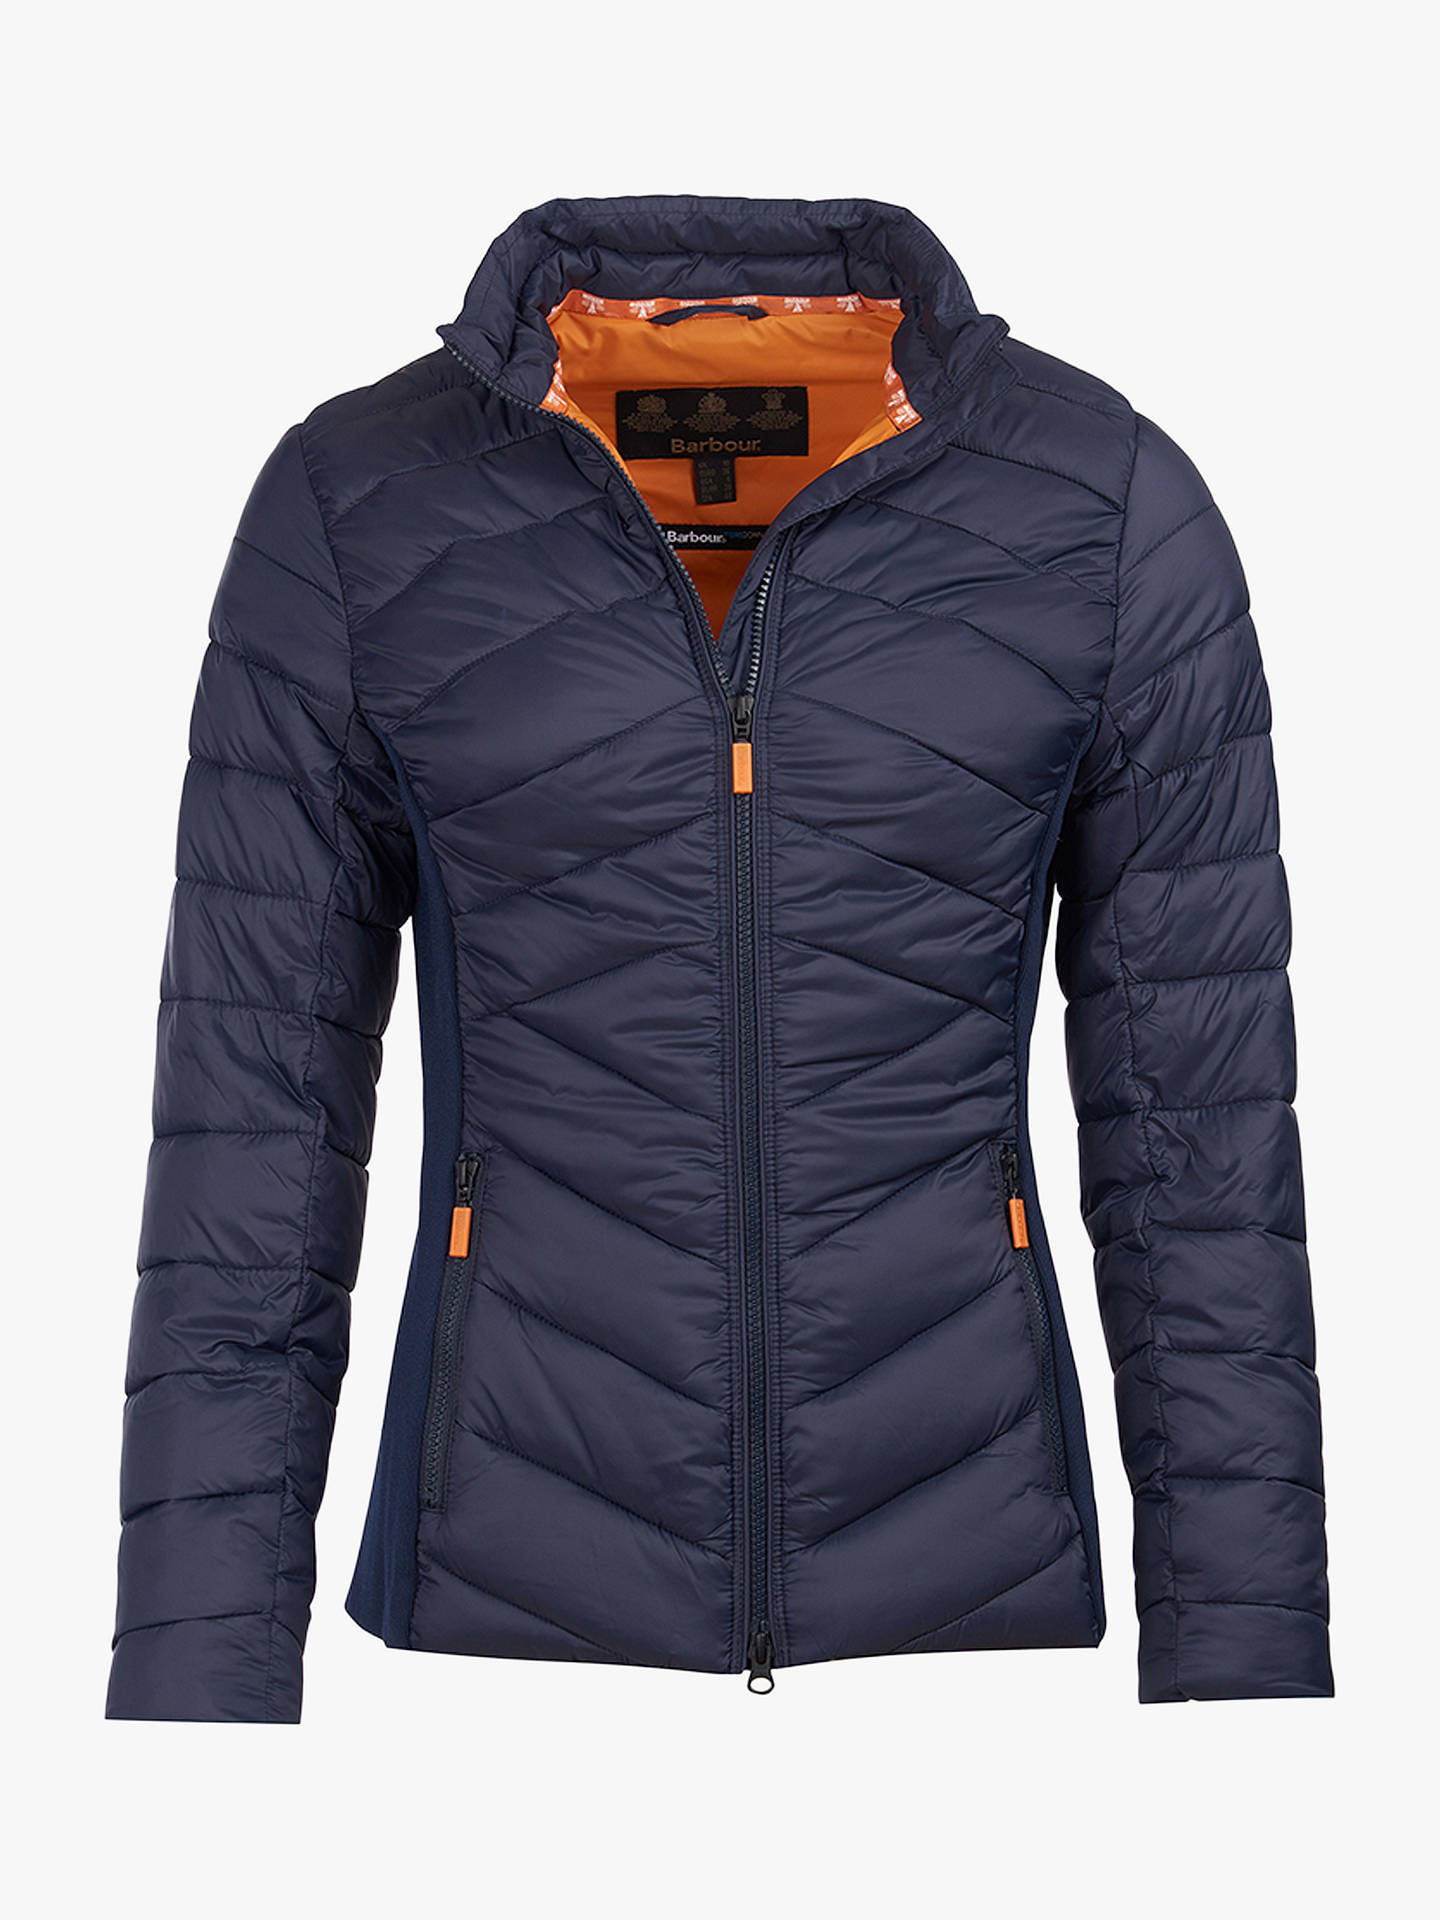 Barbour Longshore quilted navy jacket Kate.jpg